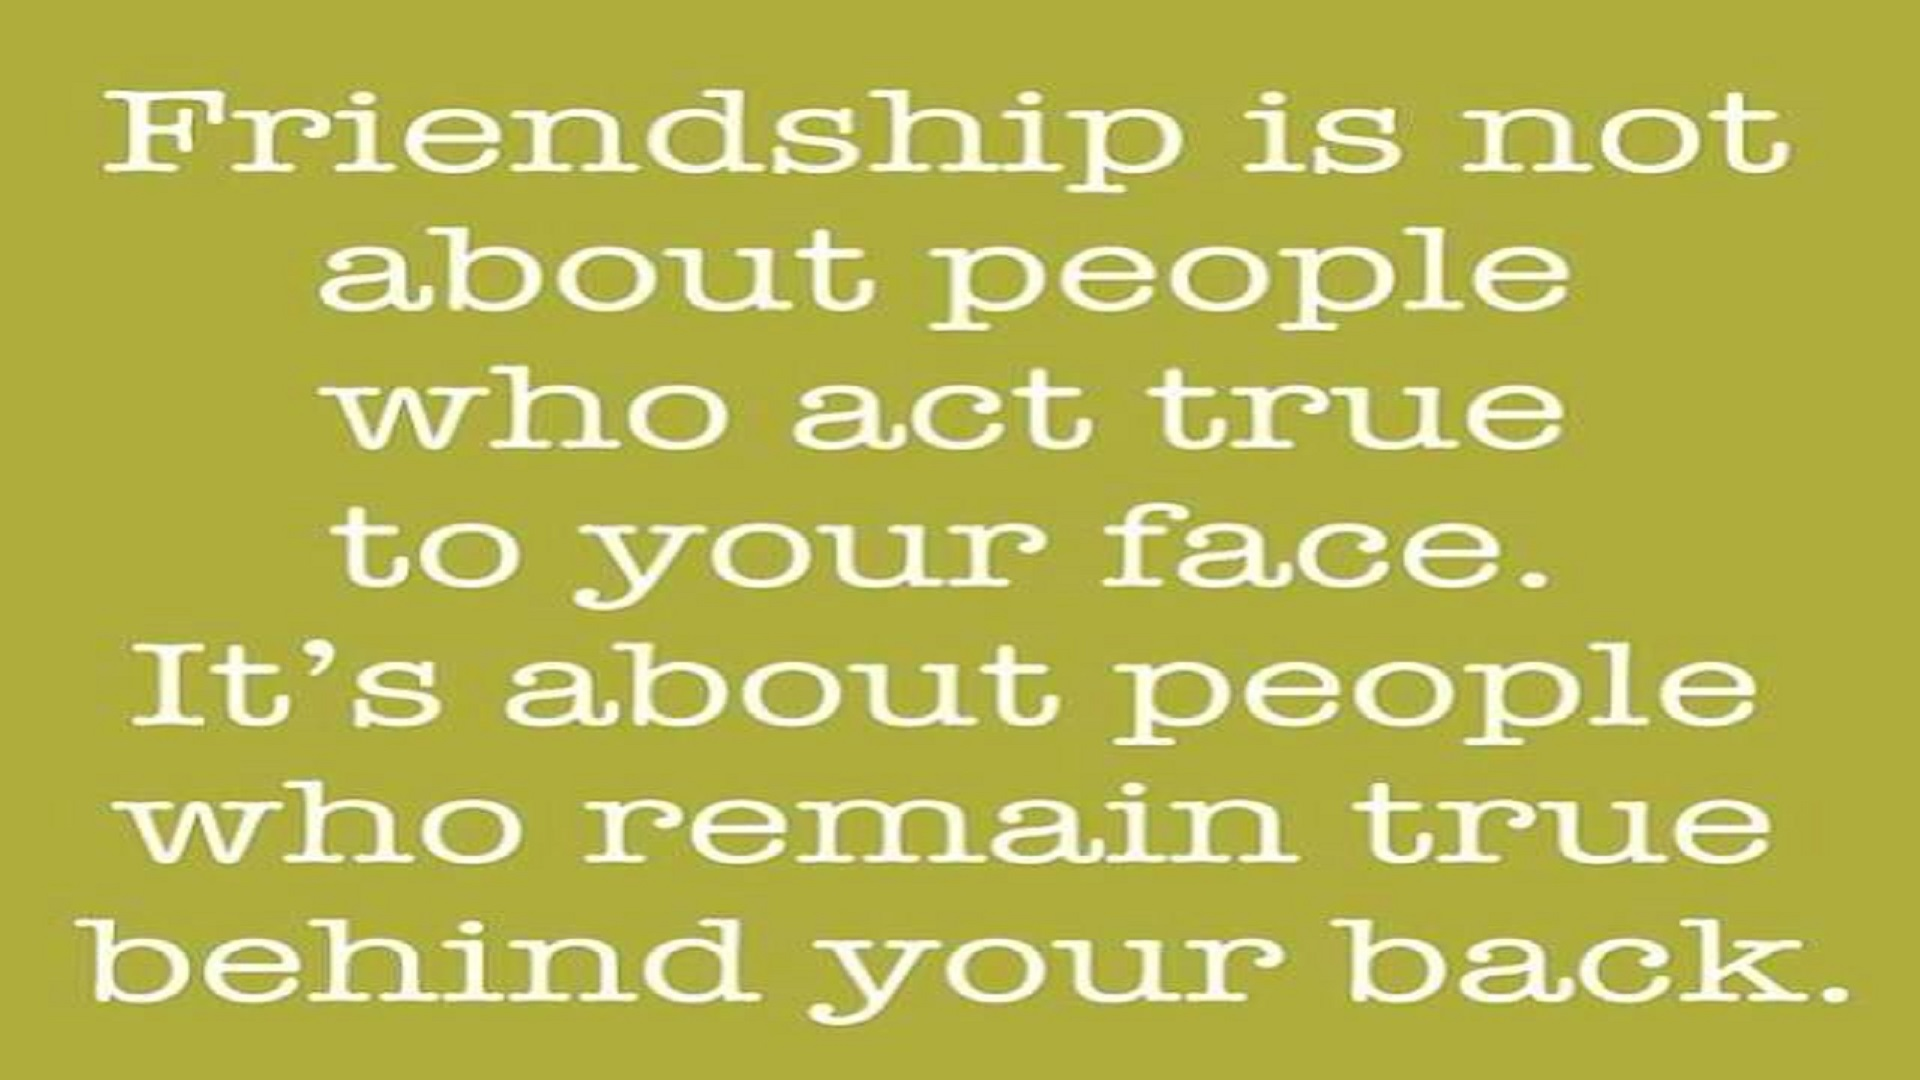 Amazing Quotes About Friendship Bestandfunnyfriendshipquotefreehdwallpapers  Hd Wallpaper